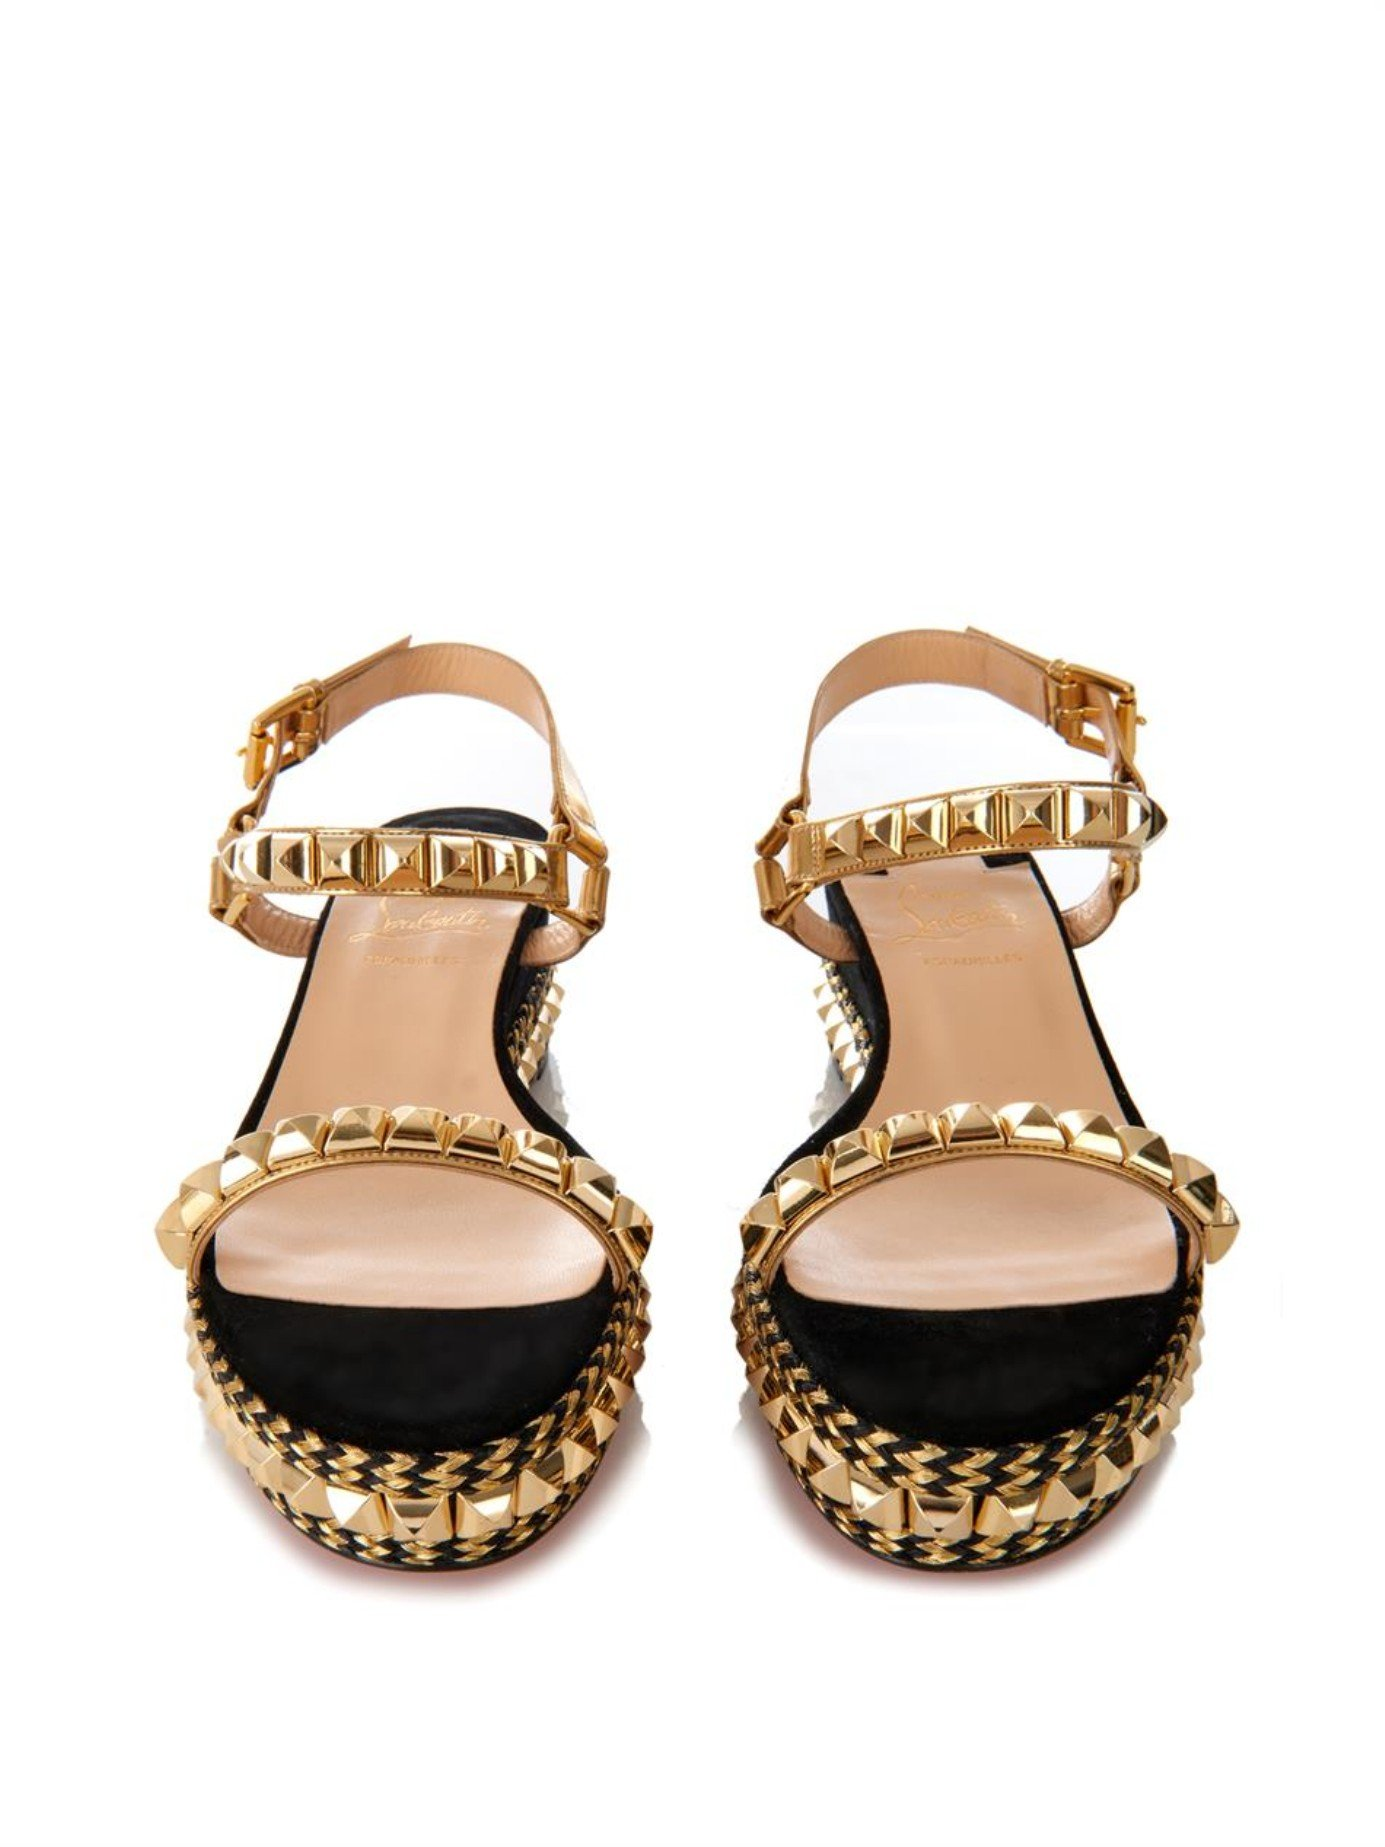 8525a027992 ... switzerland christian louboutin cataclou studded flatform sandals in  metallic lyst 8c786 43309